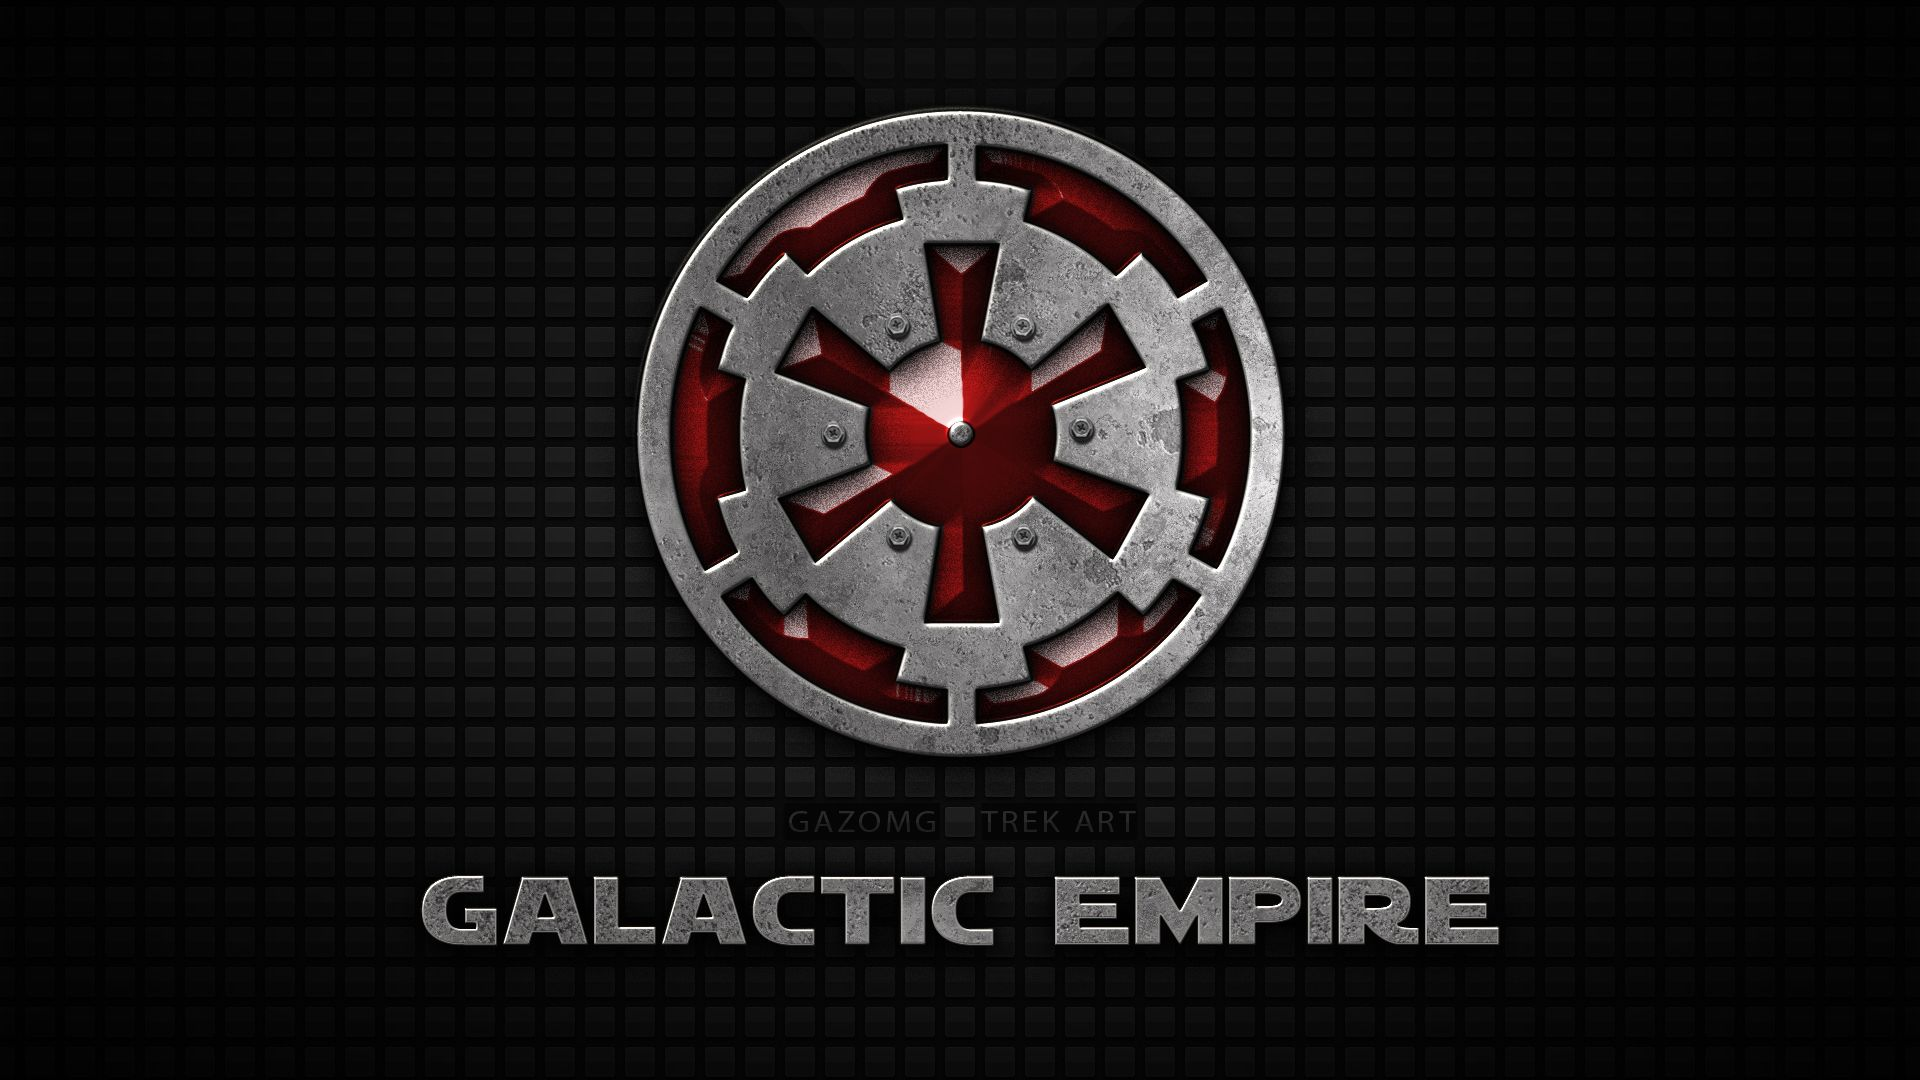 Star Wars Galactic Empire Wallpaper By Gazomg Galactic Empire